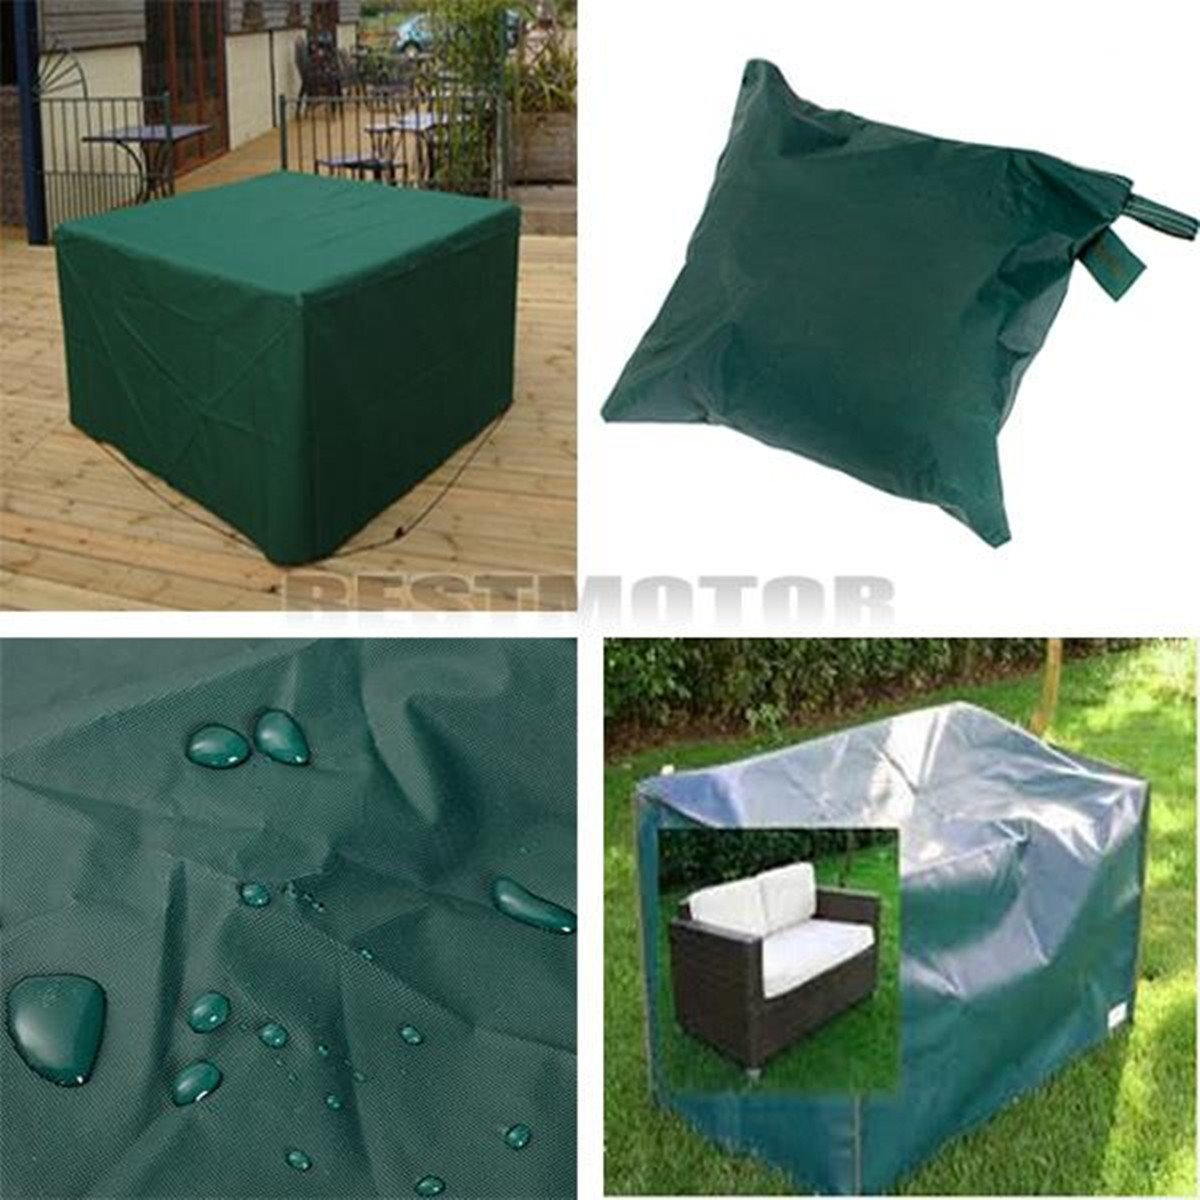 Online Shop 210x193x97cm Waterproof Outdoor Garden Patio Furniture Cover Table  Chair Shelter | Aliexpress Mobile